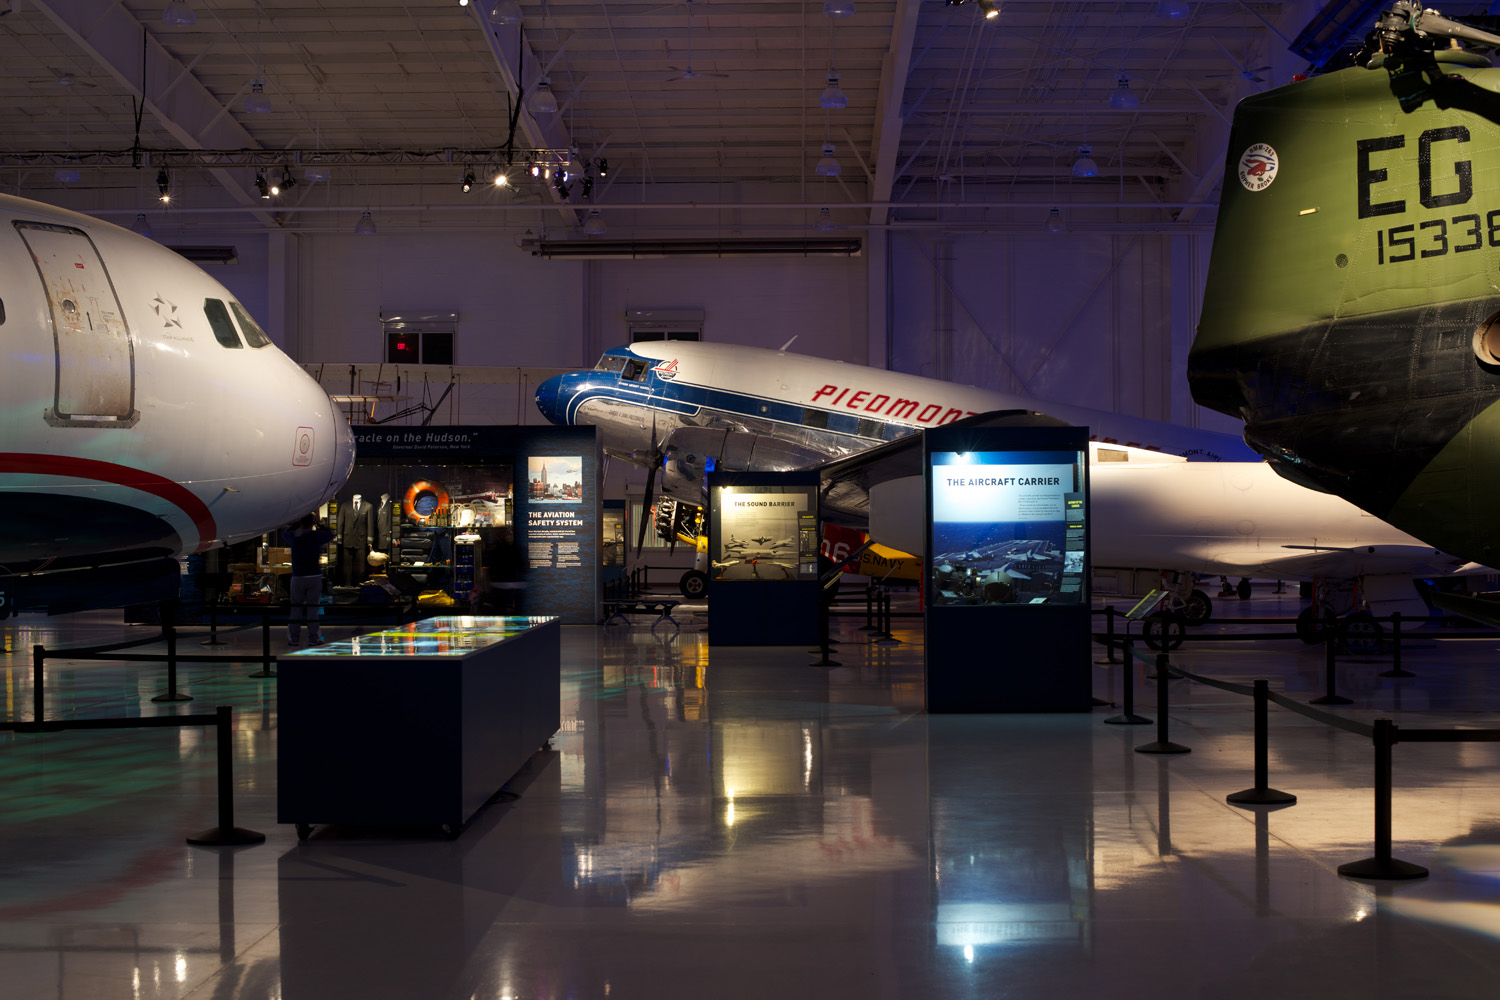 A thematic framework was outlined, with all exhibition content designed to transform the existing aviation hangar into an engaging visitor experience.